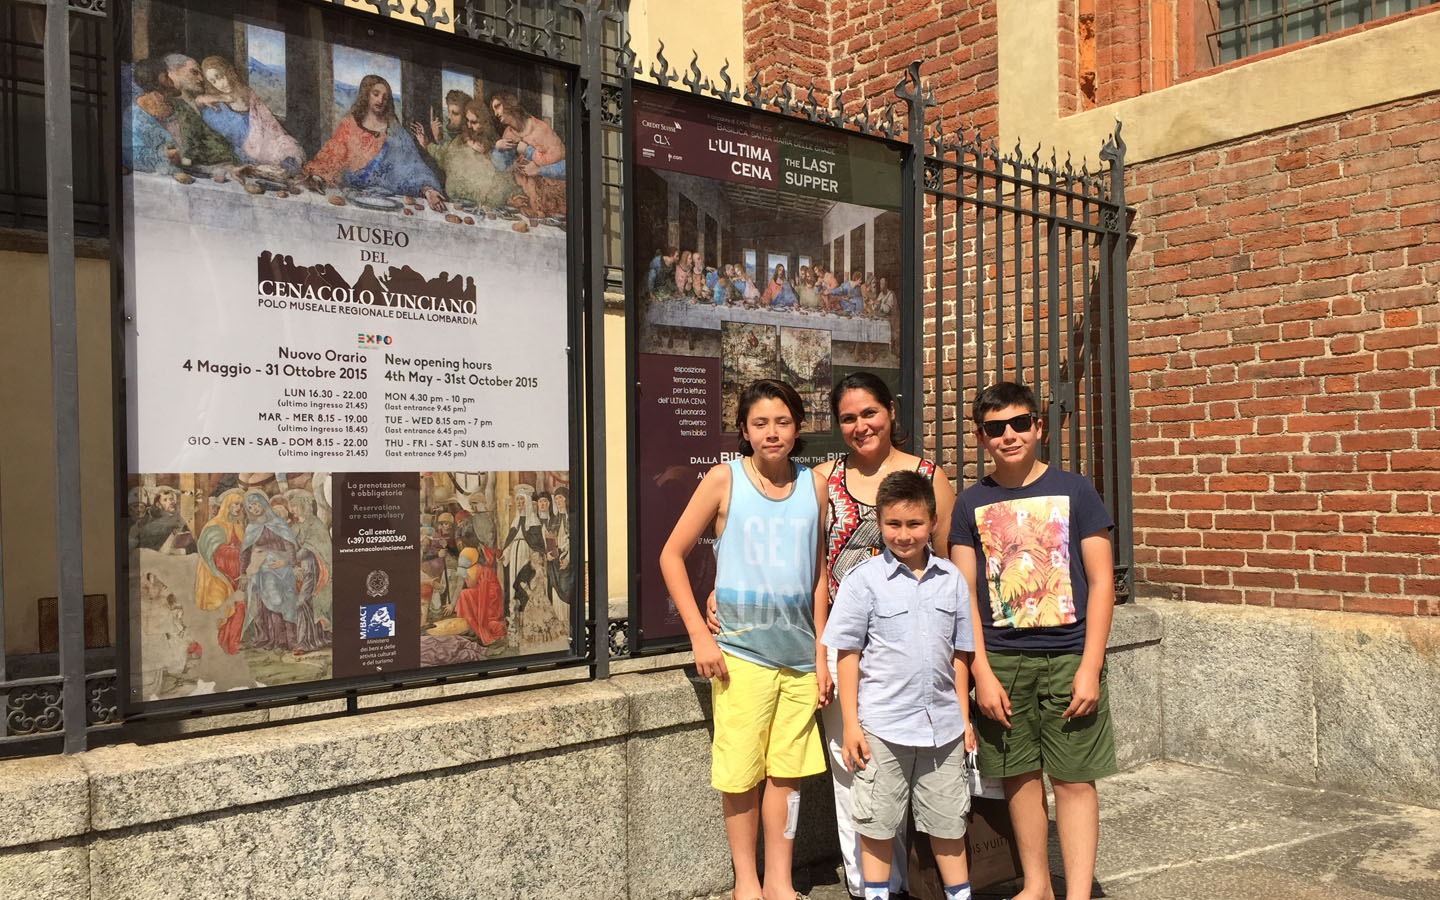 Leonardo da Vinci's The Last Supper (Il Cenacolo) at the Basilica di Santa Maria delle Grazie, Milan Italy 2015